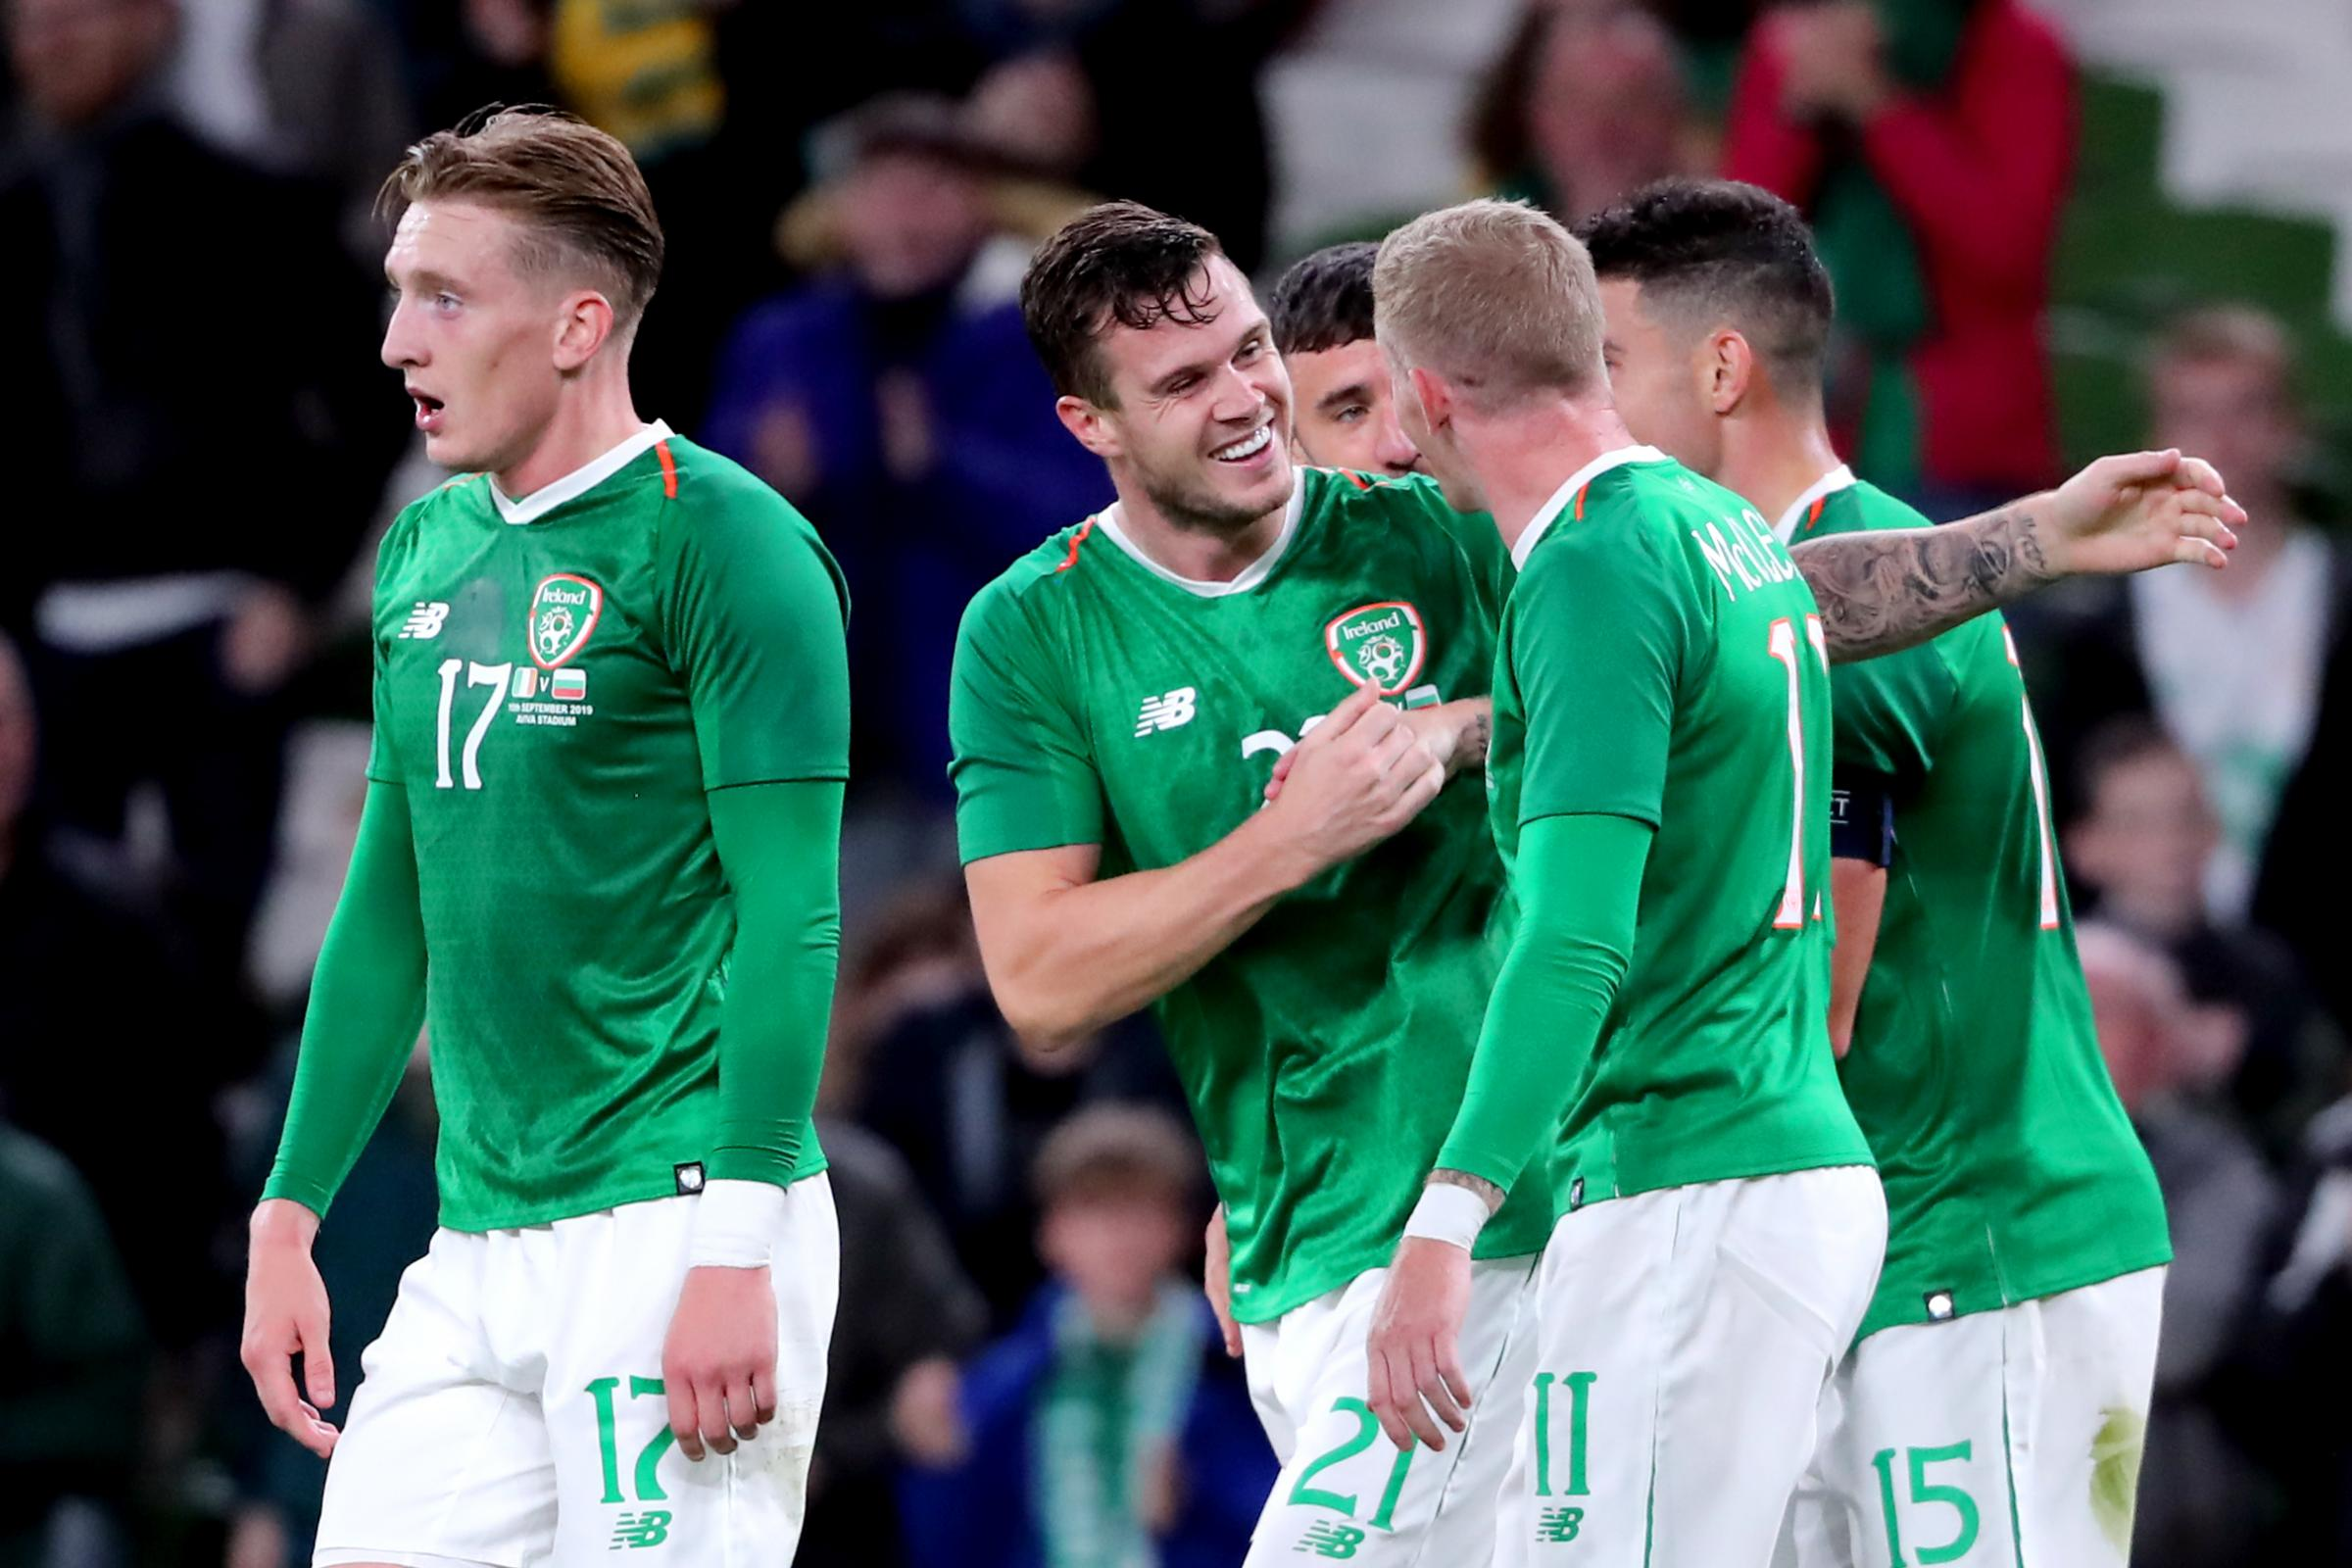 Kevin Long scored his first goal for the Republic of Ireland